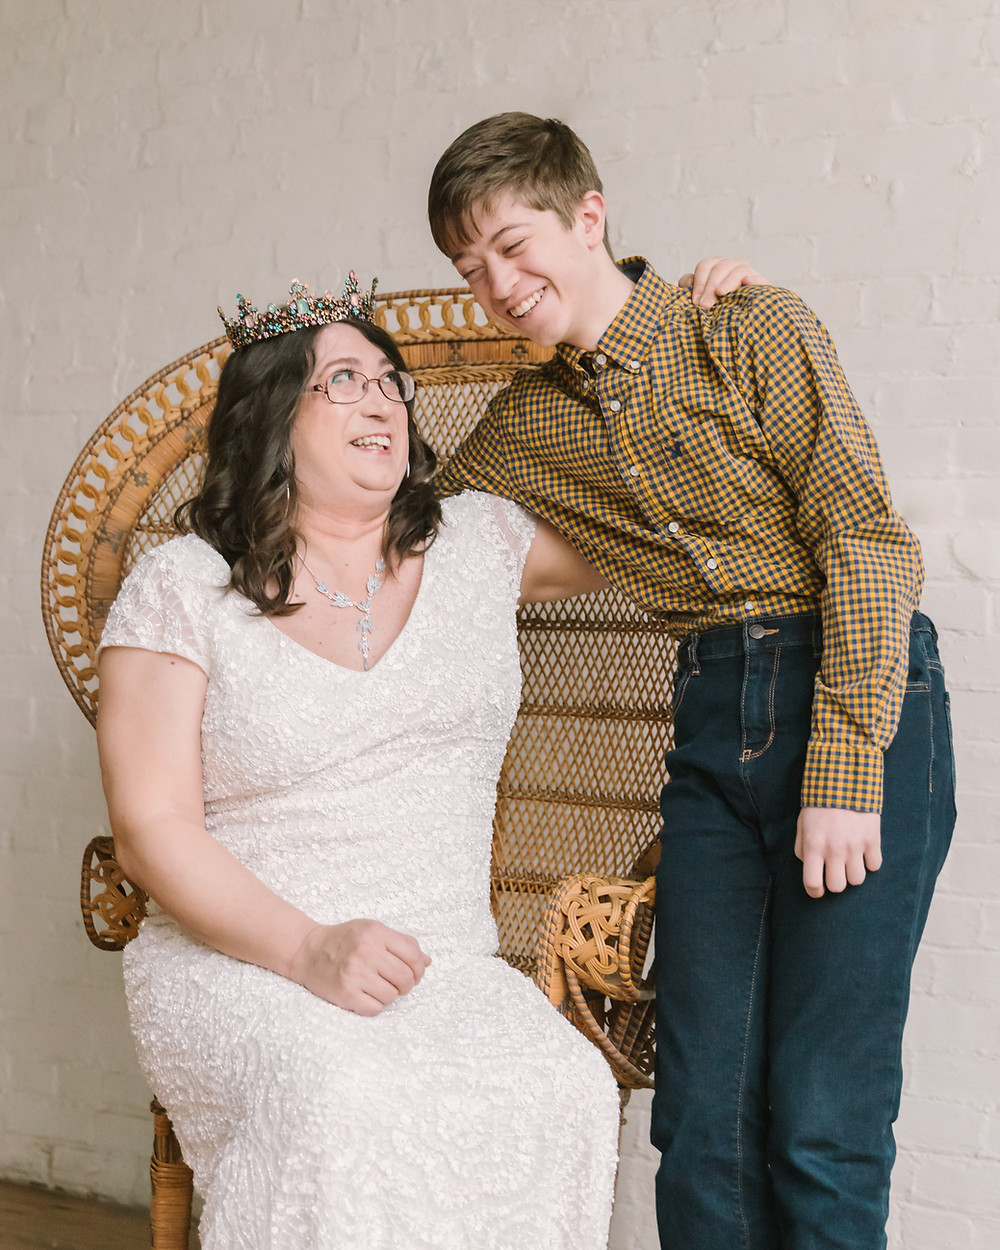 Editorial portrait of a transwoman and her son at hip at the flashlight factory by LeeAnn K Photography.